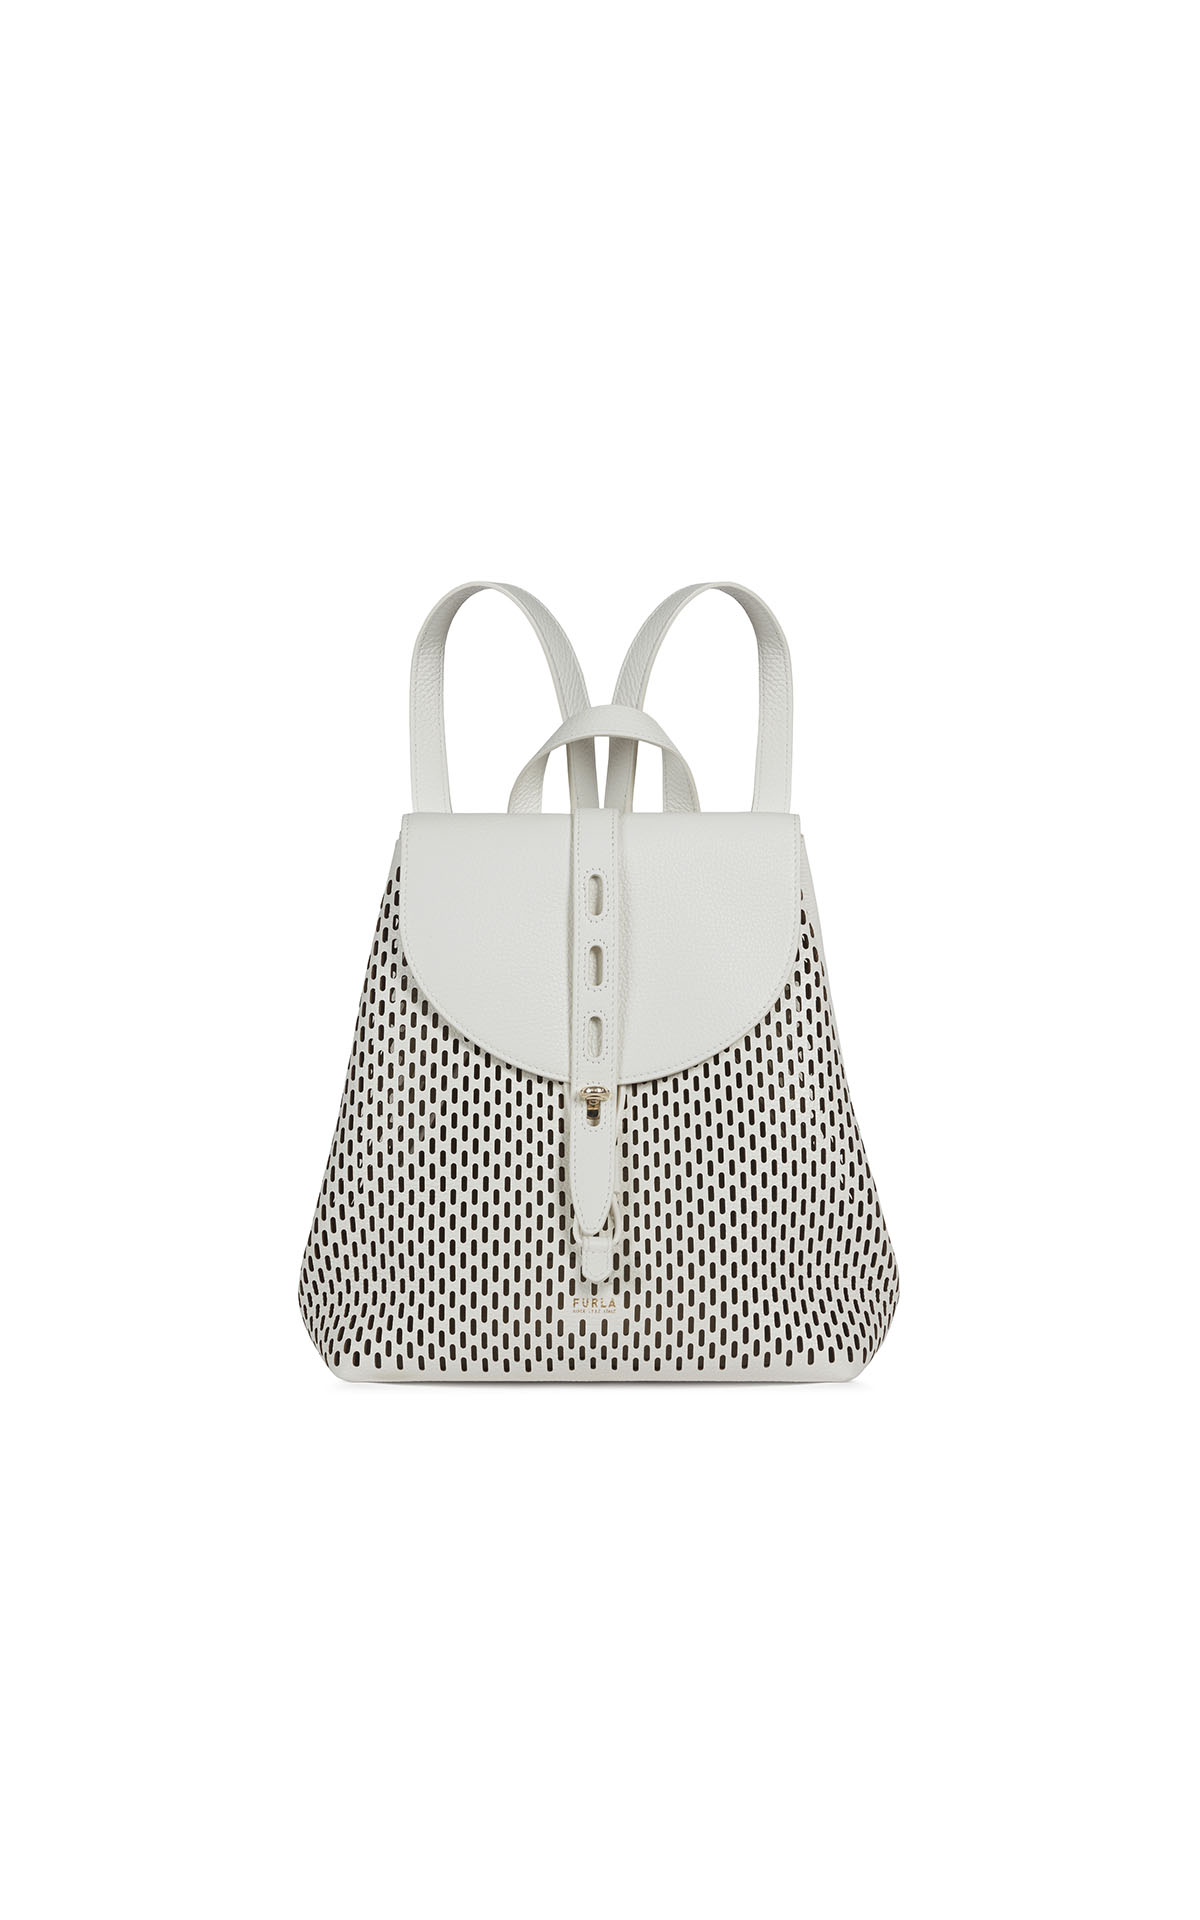 Furla net s backpack24 at the bicester village shopping collection